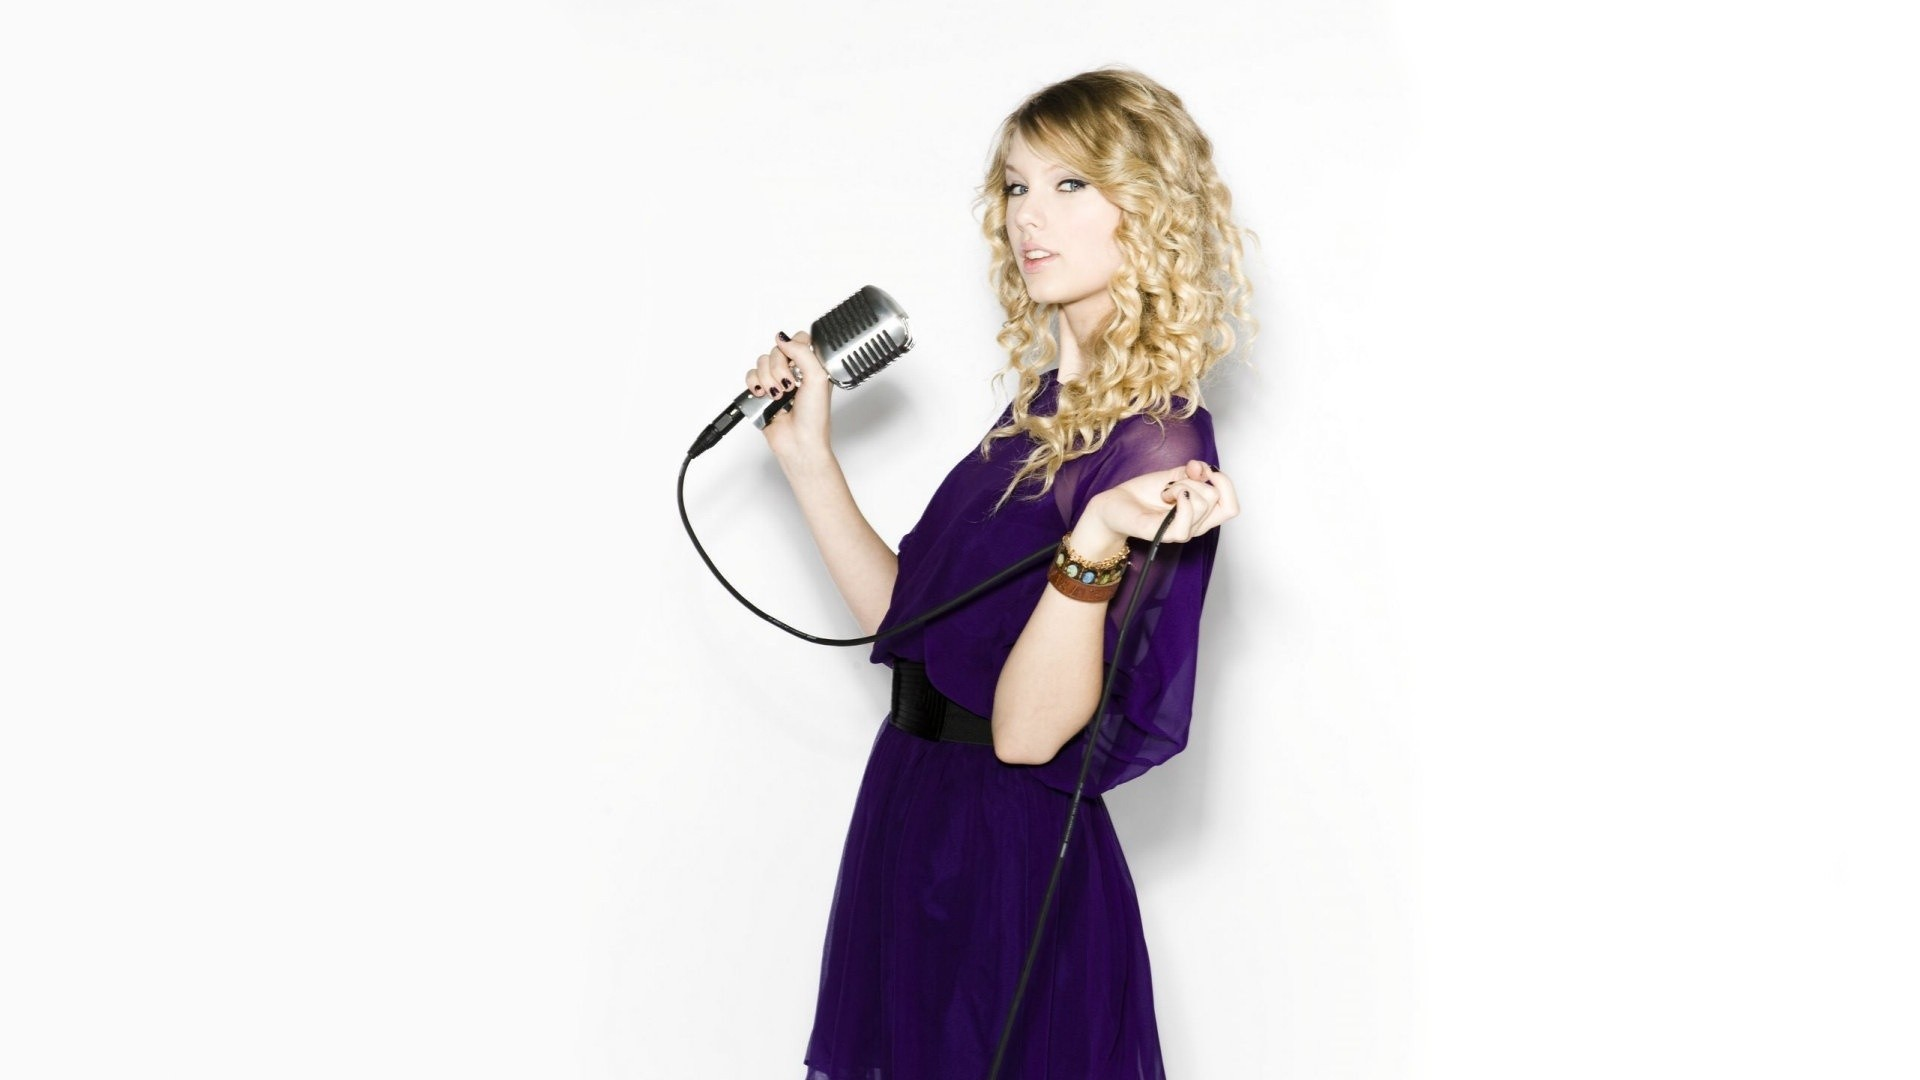 blondes woman taylor swift HD Wallpaper